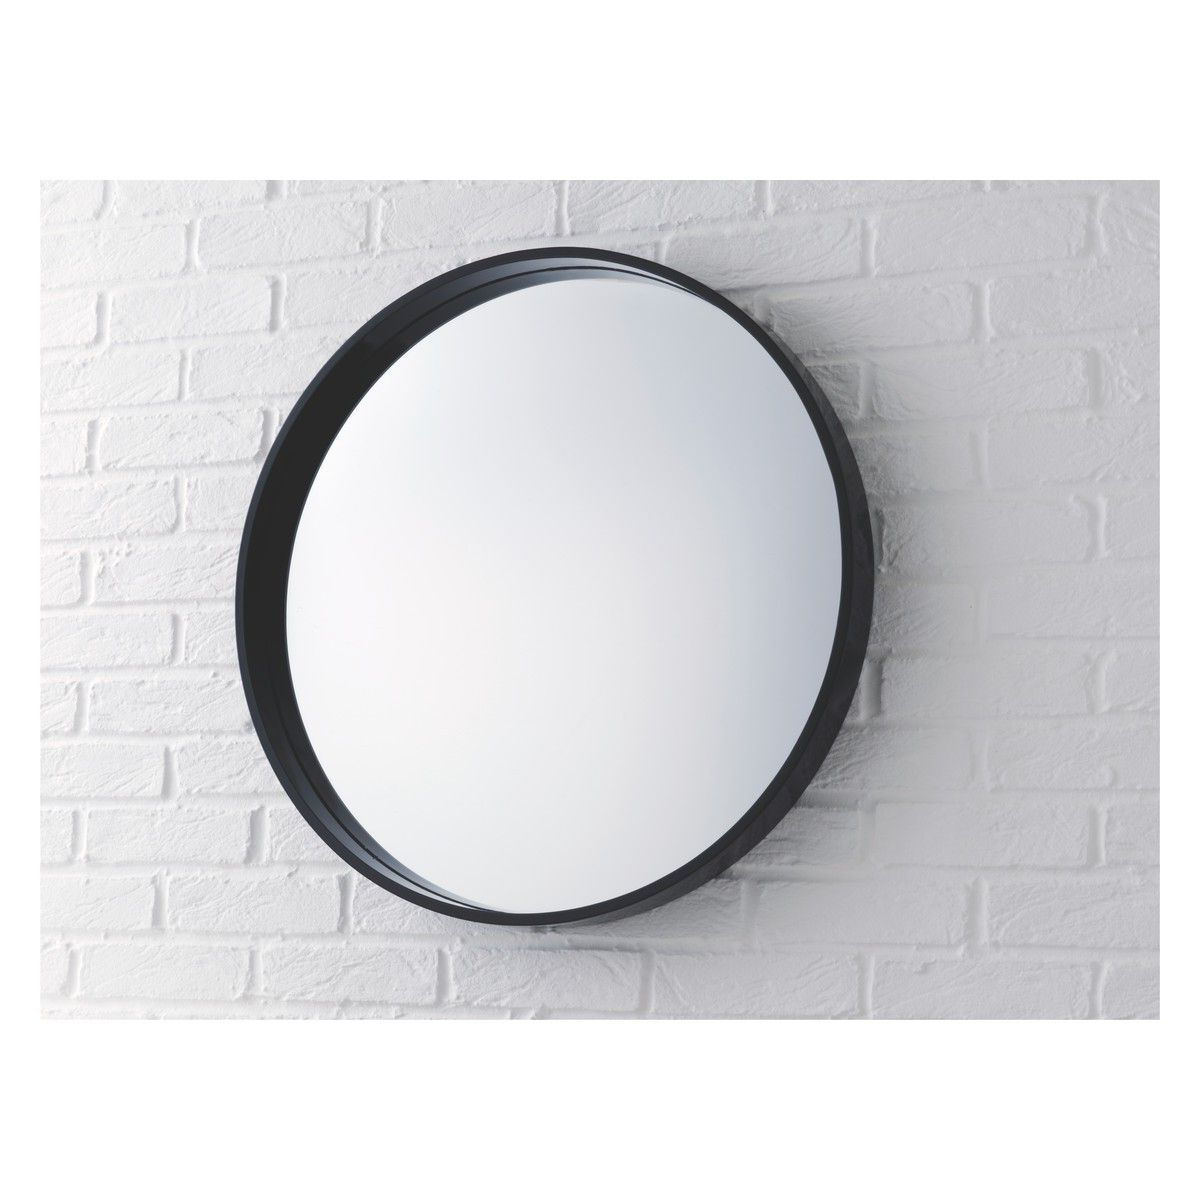 Large Black Framed Wall Mirrors In Most Current Aimee Black High Gloss Round Wall Mirror D65Cm (Gallery 15 of 20)